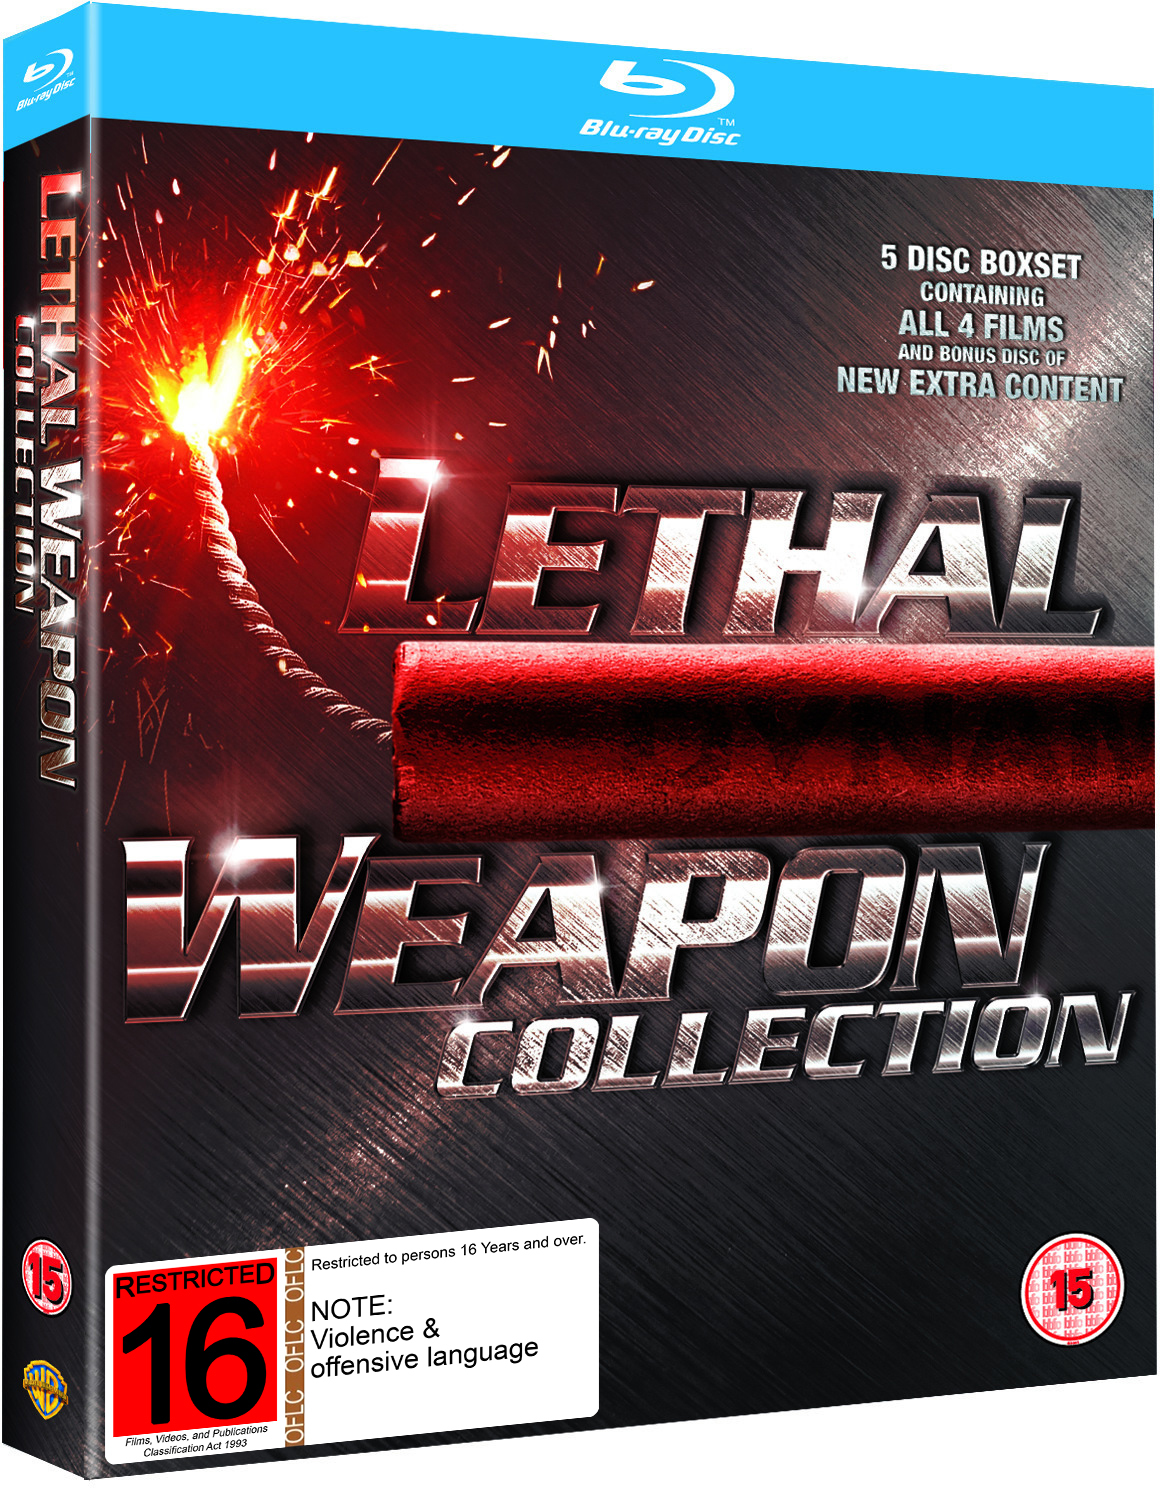 Lethal Weapon - The Complete Collection on Blu-ray image